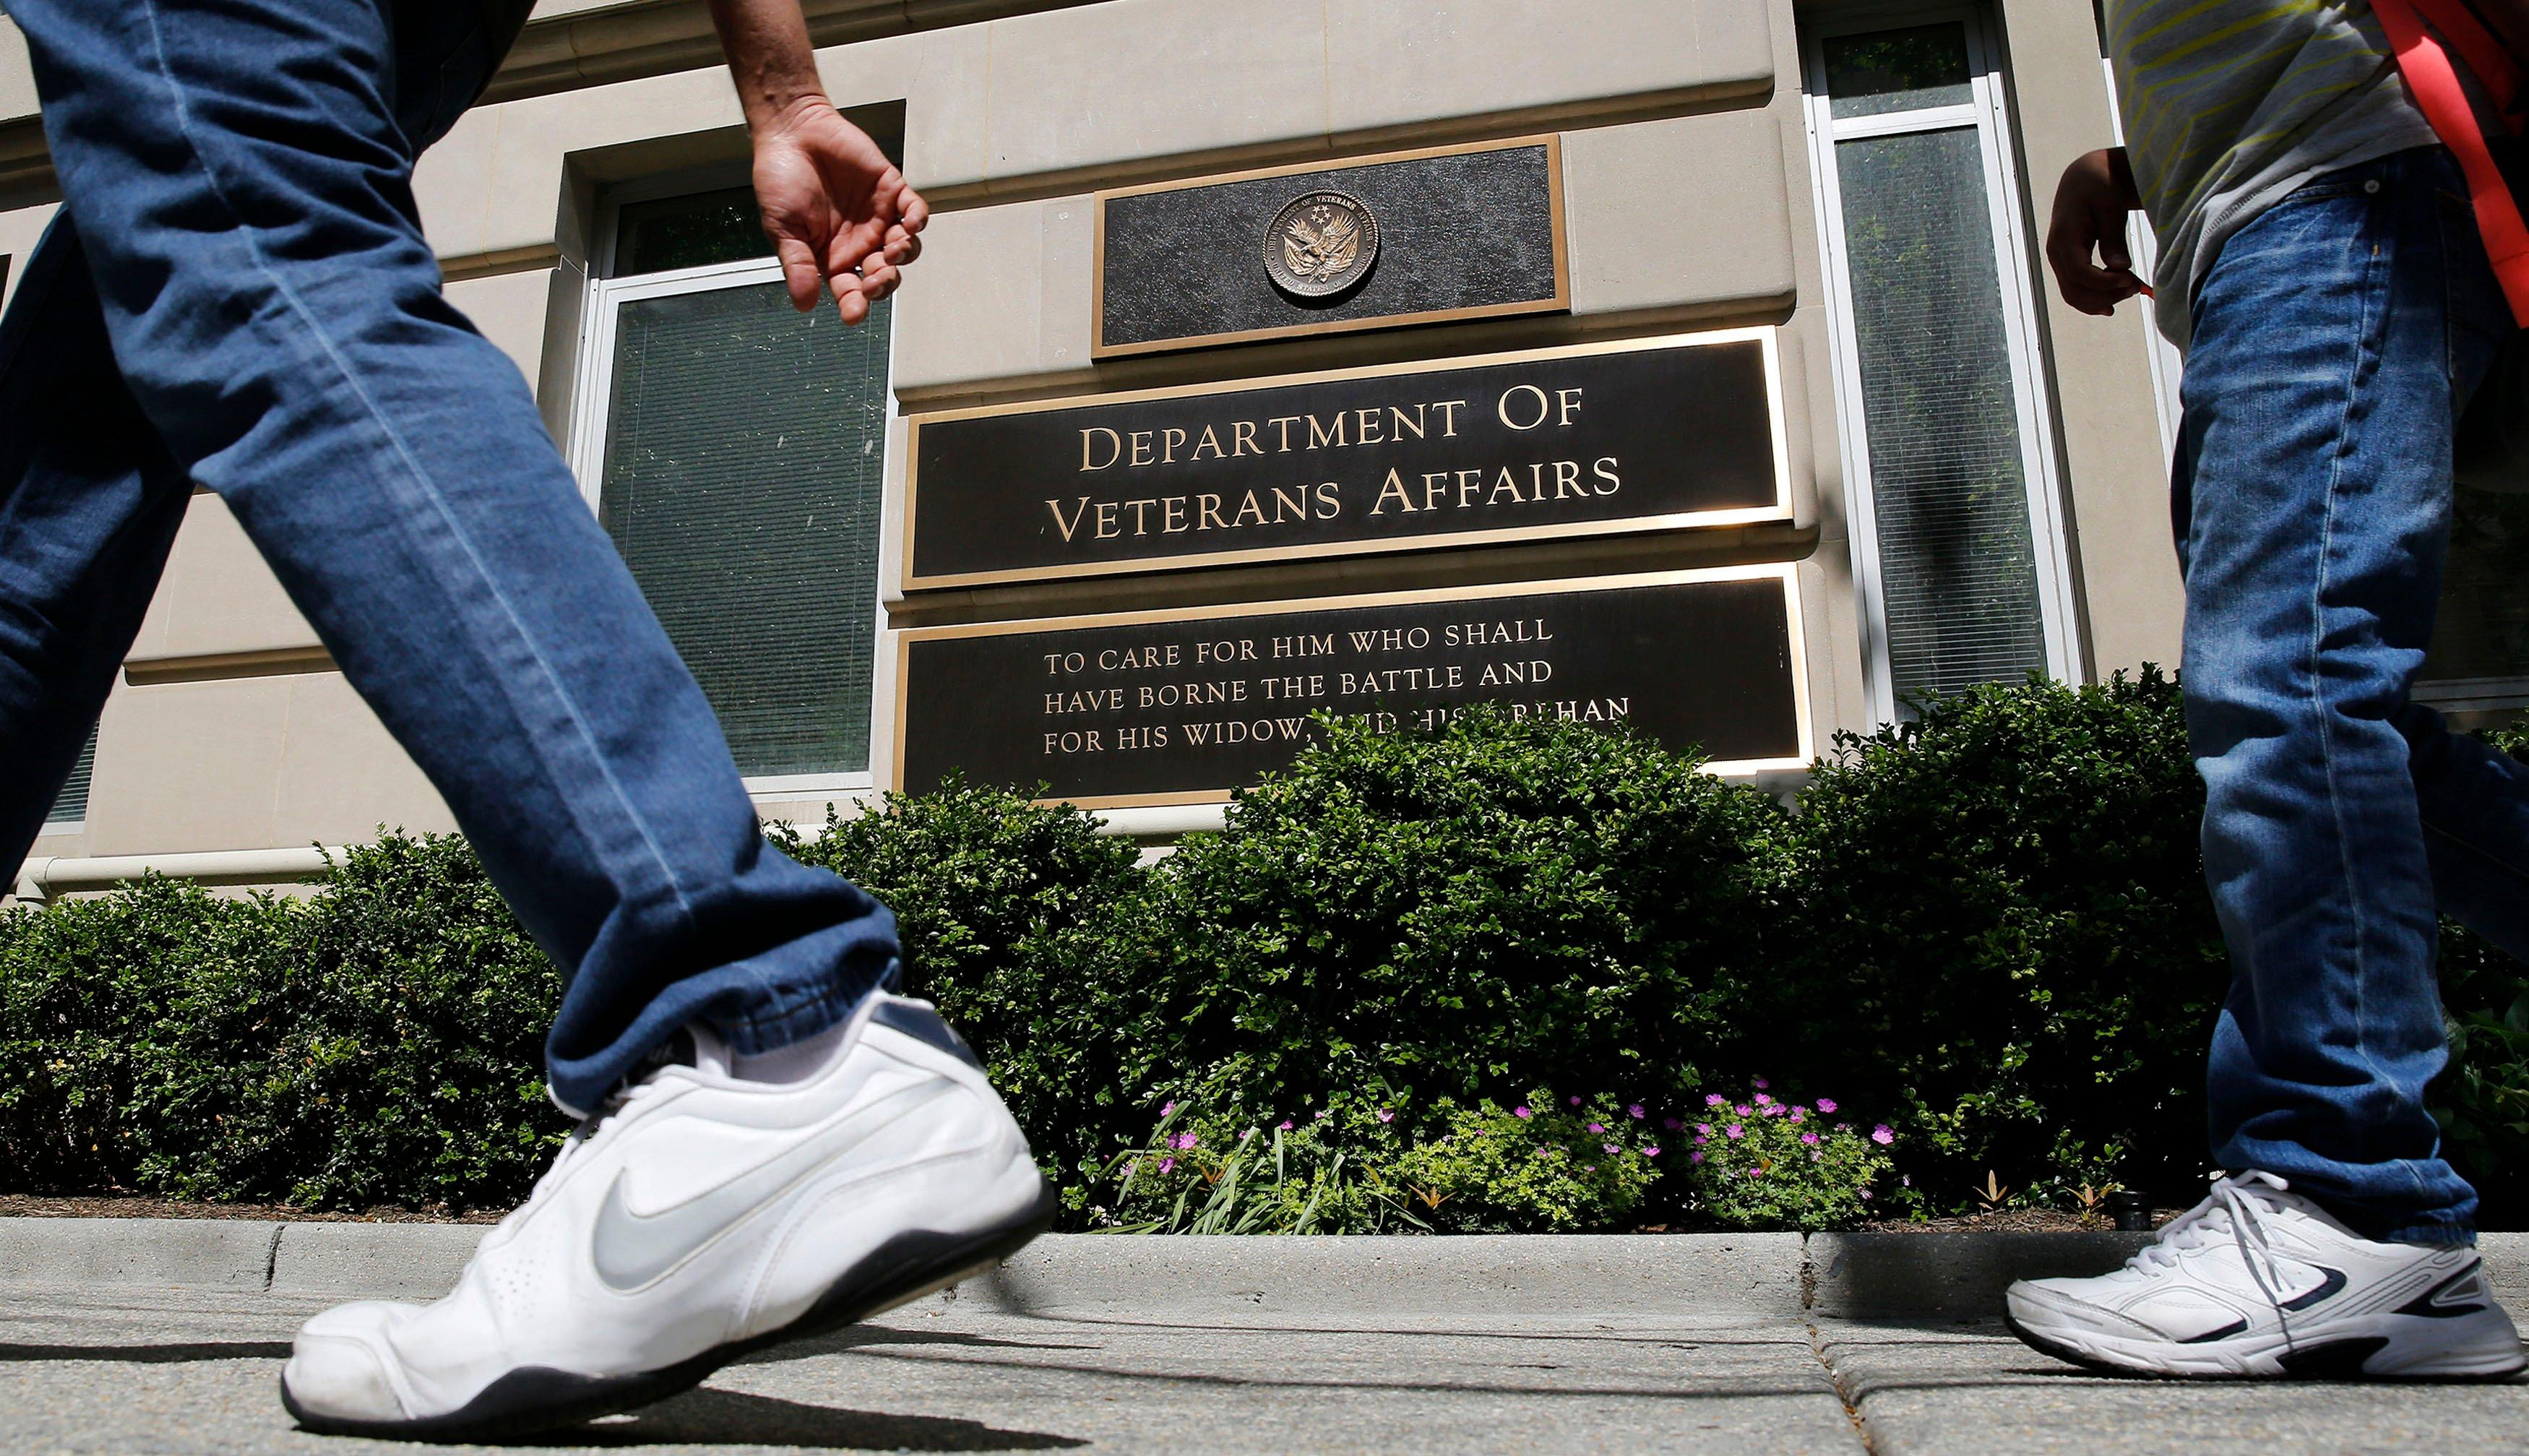 Veterans Affairs Department Makes the Government's 'High Risk' List